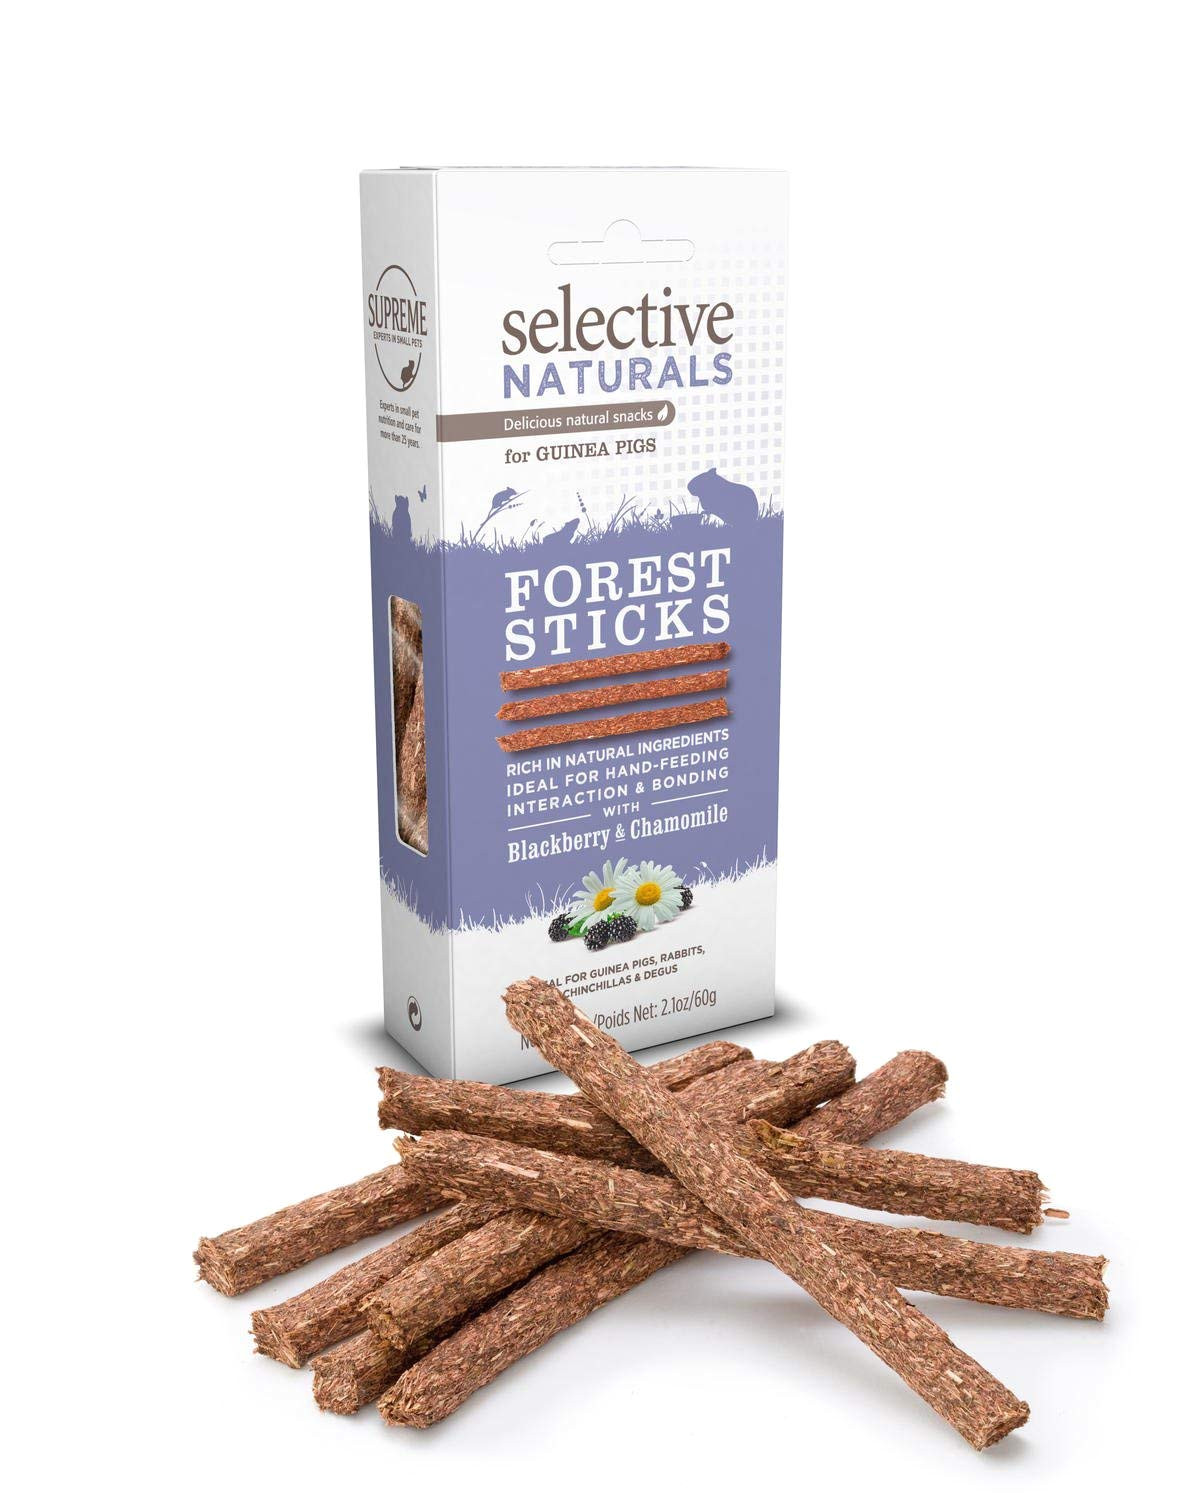 amazon com selective naturals forest sticks for guinea pigs with blackberry and chamomile pet supplies